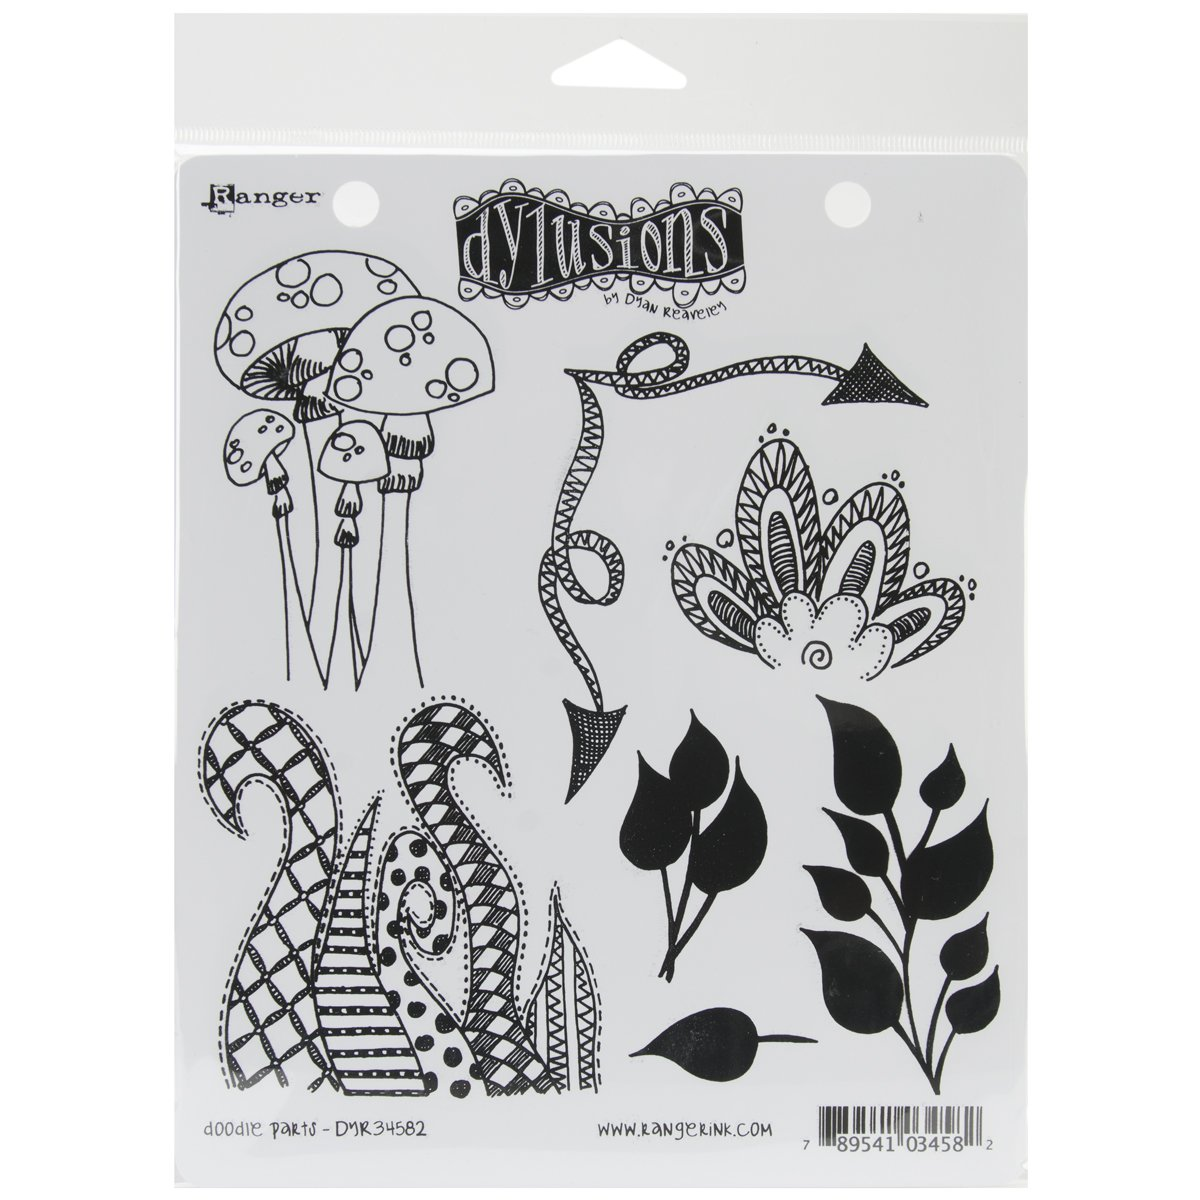 Ranger Dyan Reaveley's Dylusions Cling Stamp Collections, 8.5 by 7-Inch, Doodle Parts DYR-34582